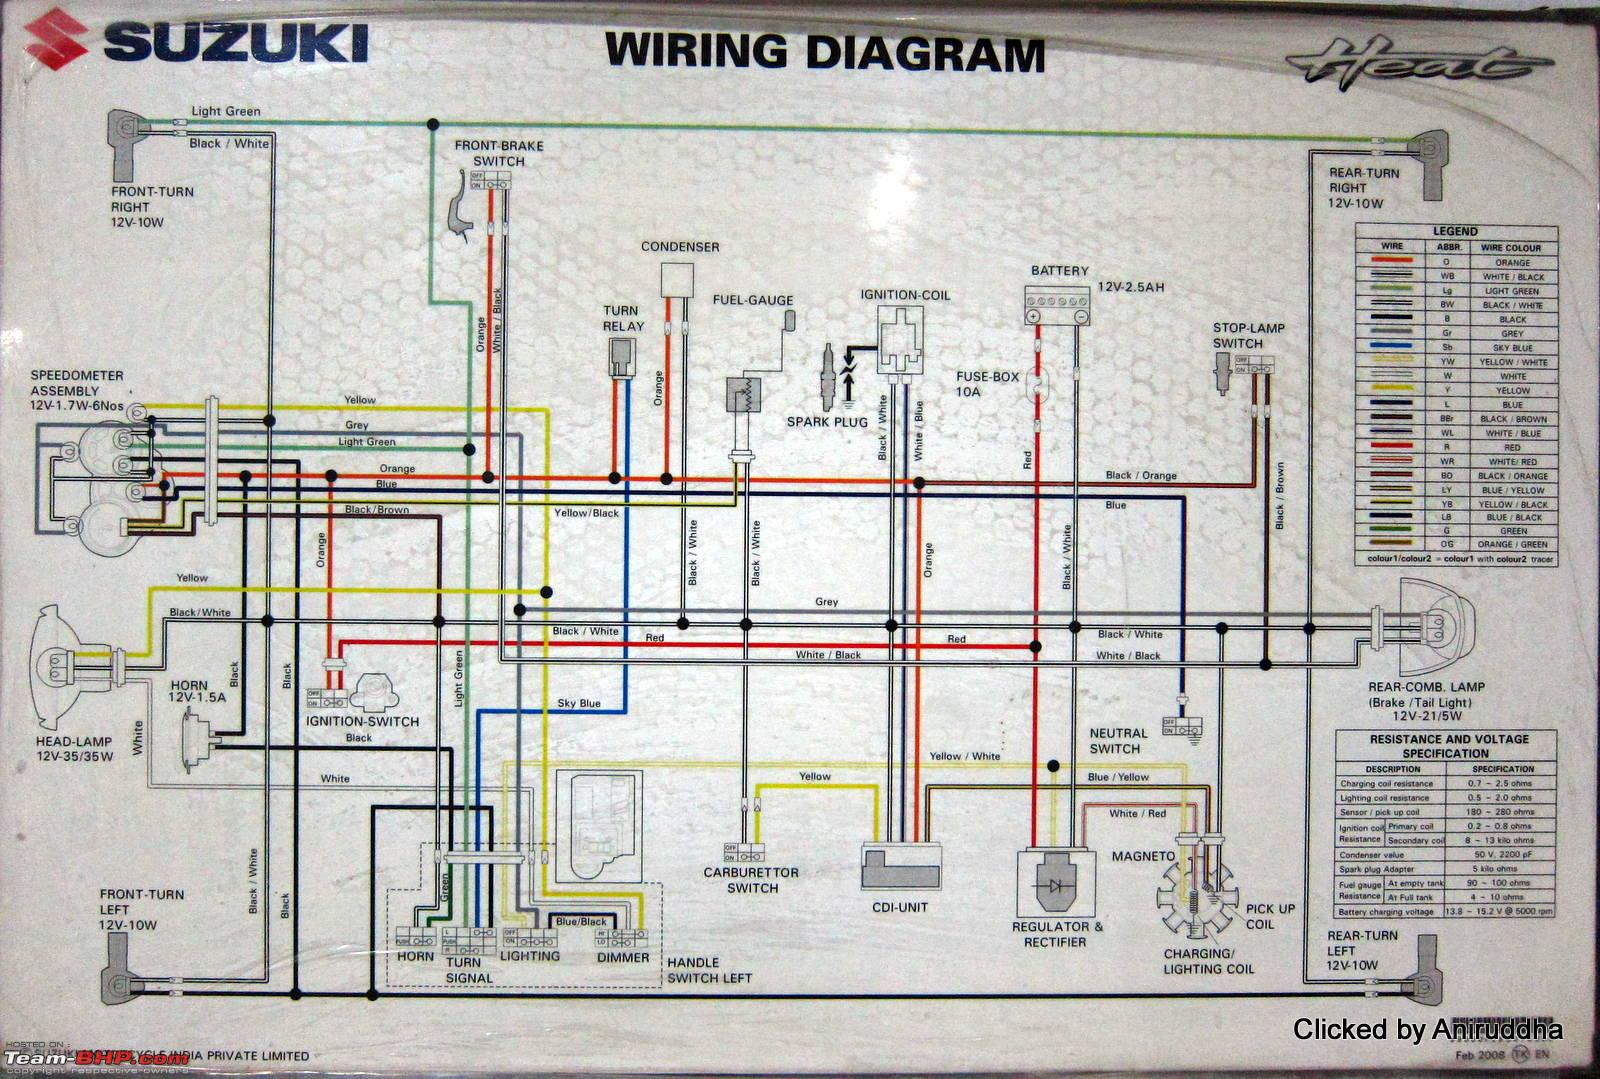 kymco cdi box diagram with Sym 125 Wiring Diagram on Cd15 New Racing Cdi Wiring Diagram in addition Sym 125 Wiring Diagram also Zongshen 125cc Scooter Wiring Diagram together with Kymco Agility 125 Wiring Diagram furthermore Jonway Scooter Engine Diagram.